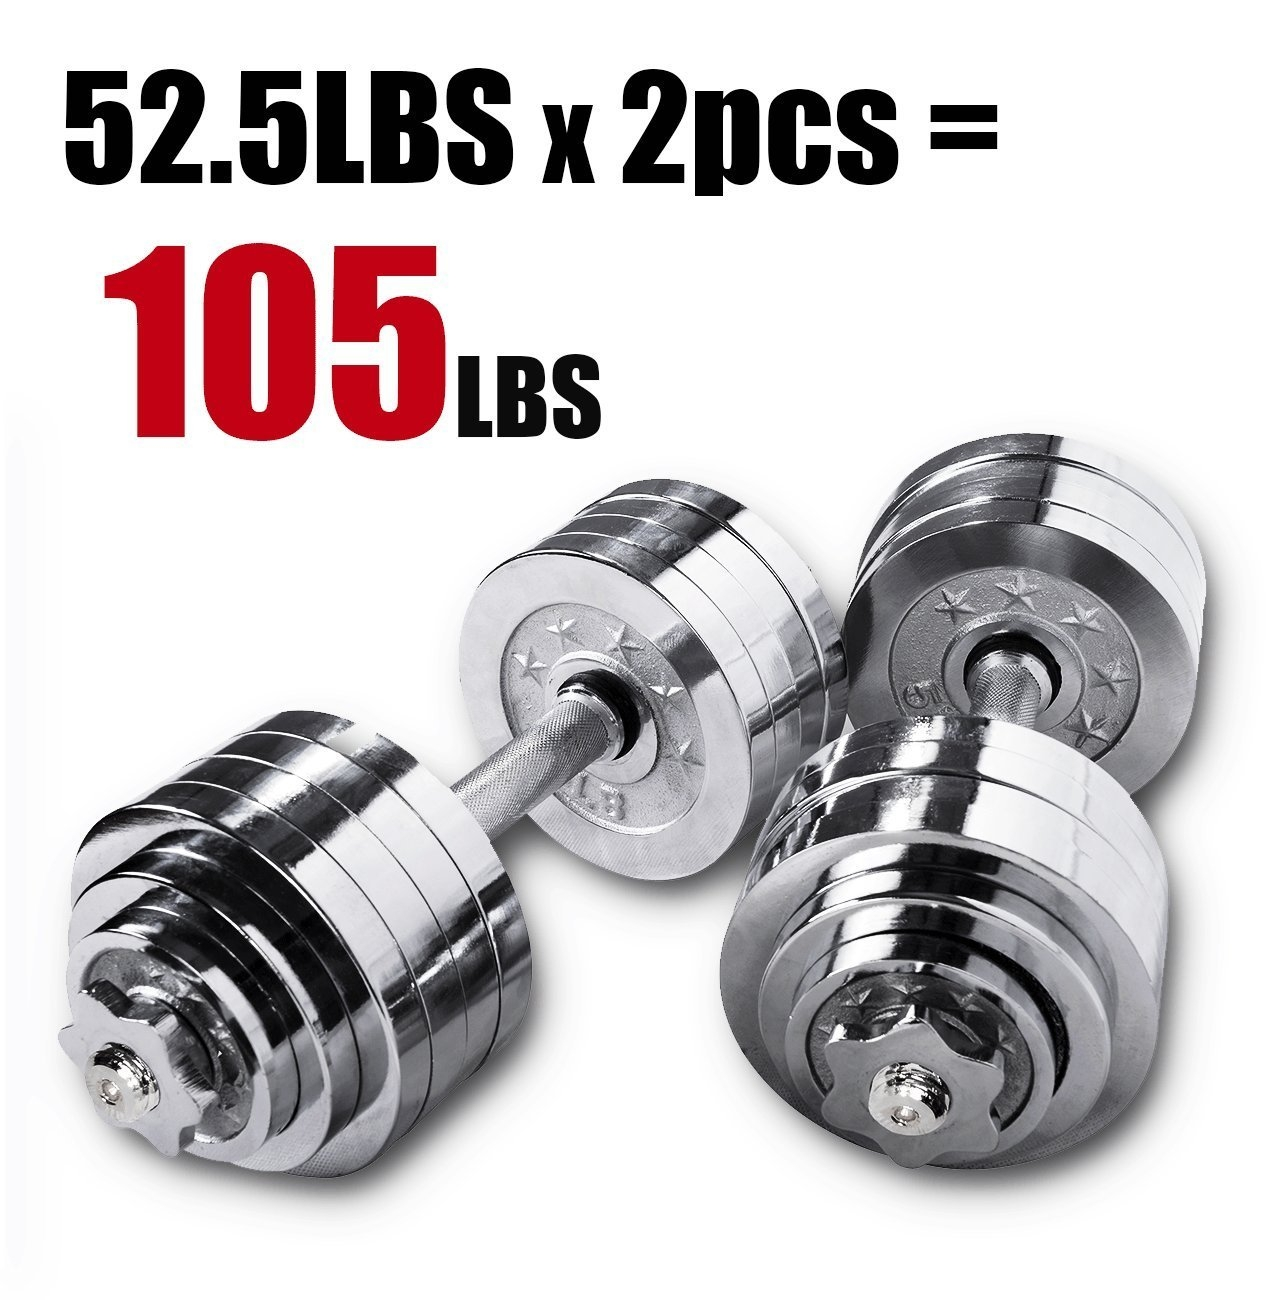 Starring 65 105 200 Lbs adjustable dumbbells